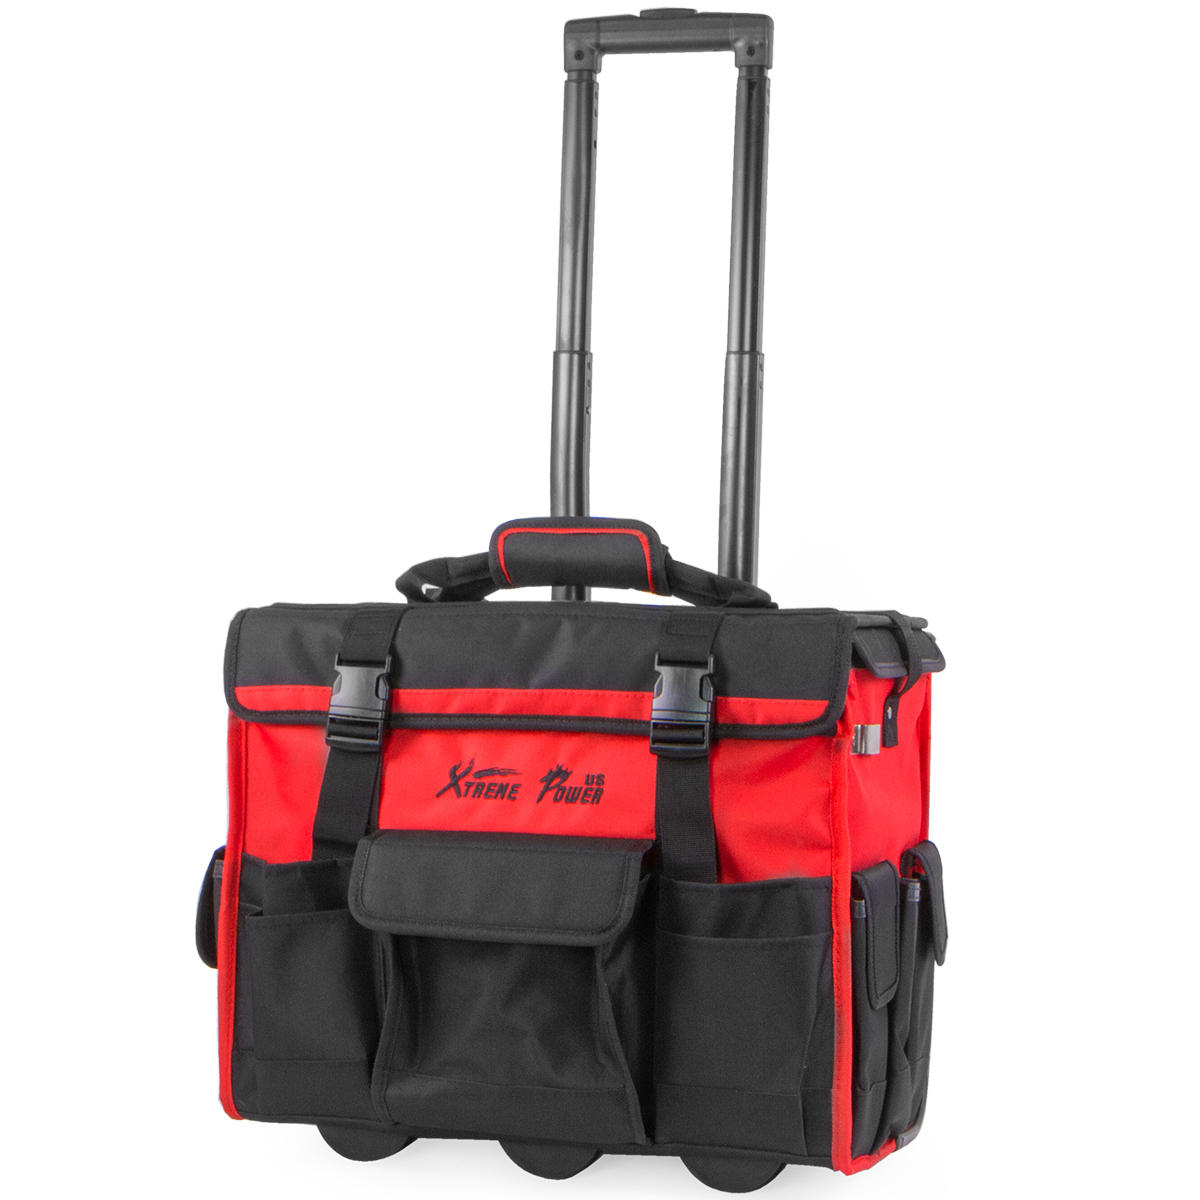 "18"" Portable Rolling Tool Bag Storage Organizer HD, with Wheels by LIVEDITOR LIGHTING"